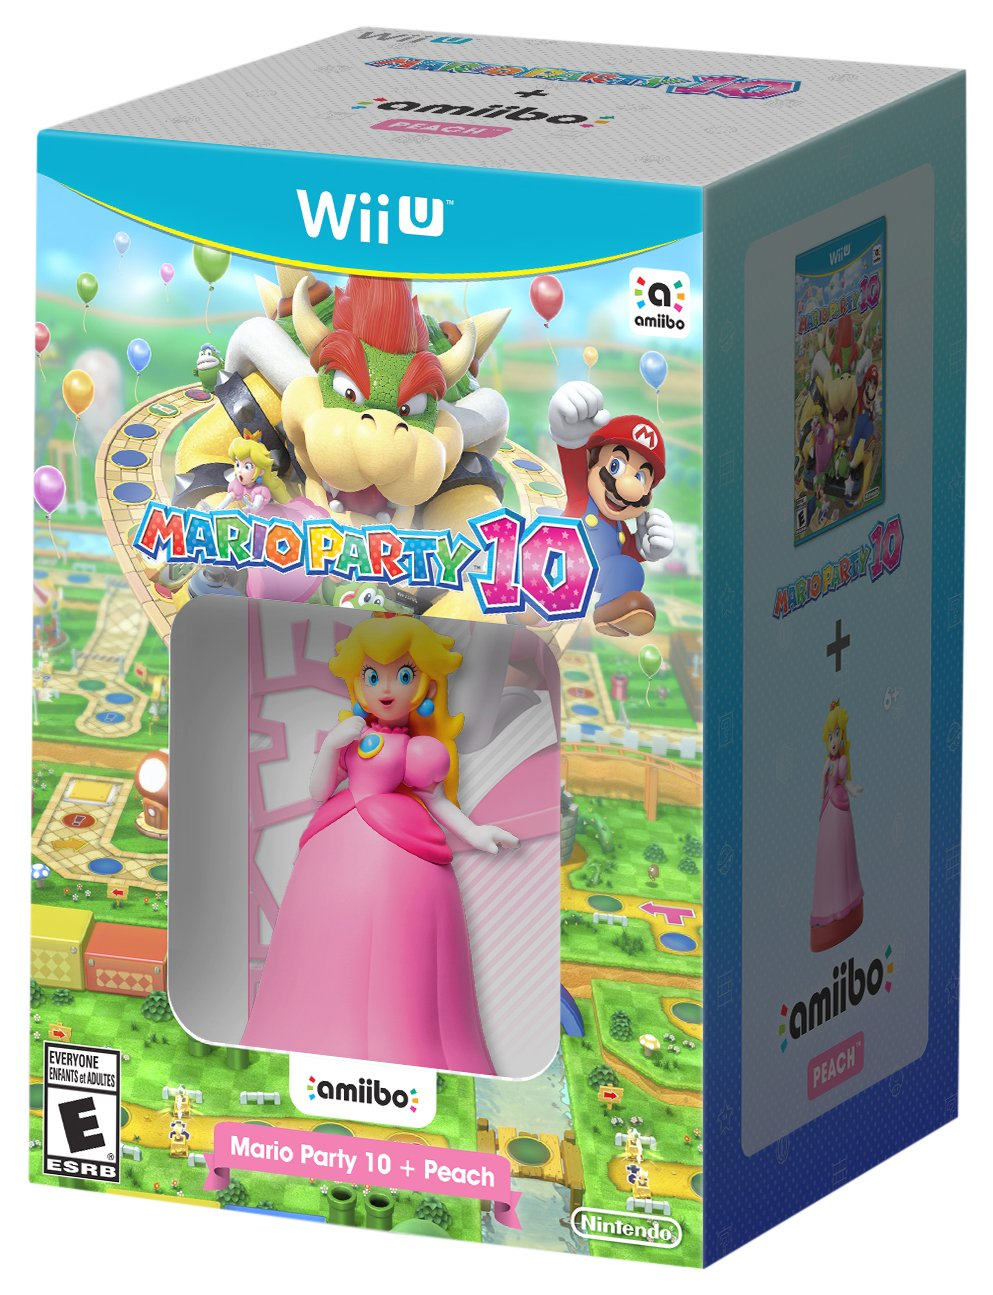 Mario Party 10 + Peach amiibo - Wii U